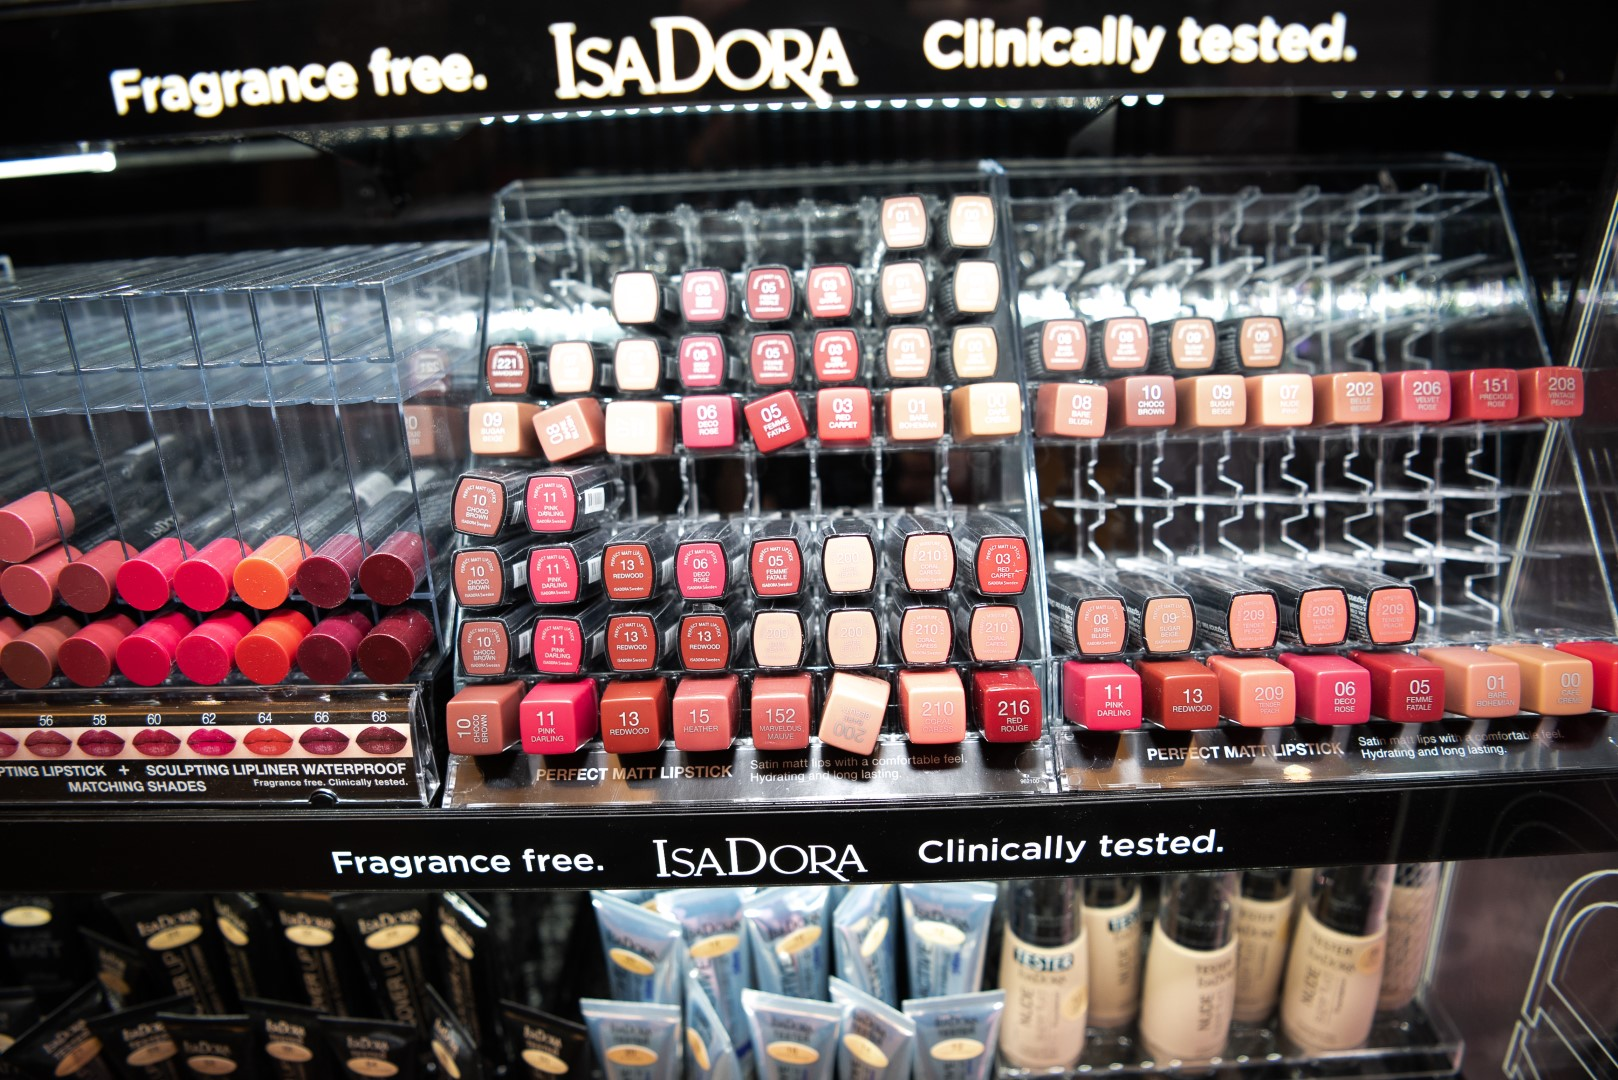 AMMAN, JORDAN - INVALID DATE Invalid date: A booth sponsored by IsaDORA cosmetics is displayed at Jordan Fashion Week 019 at the Kempinski Amman on March 29, 2019 in Amman, Jordan (Photo by Arun Nevader/Getty Images for Jordan Fashion Week)